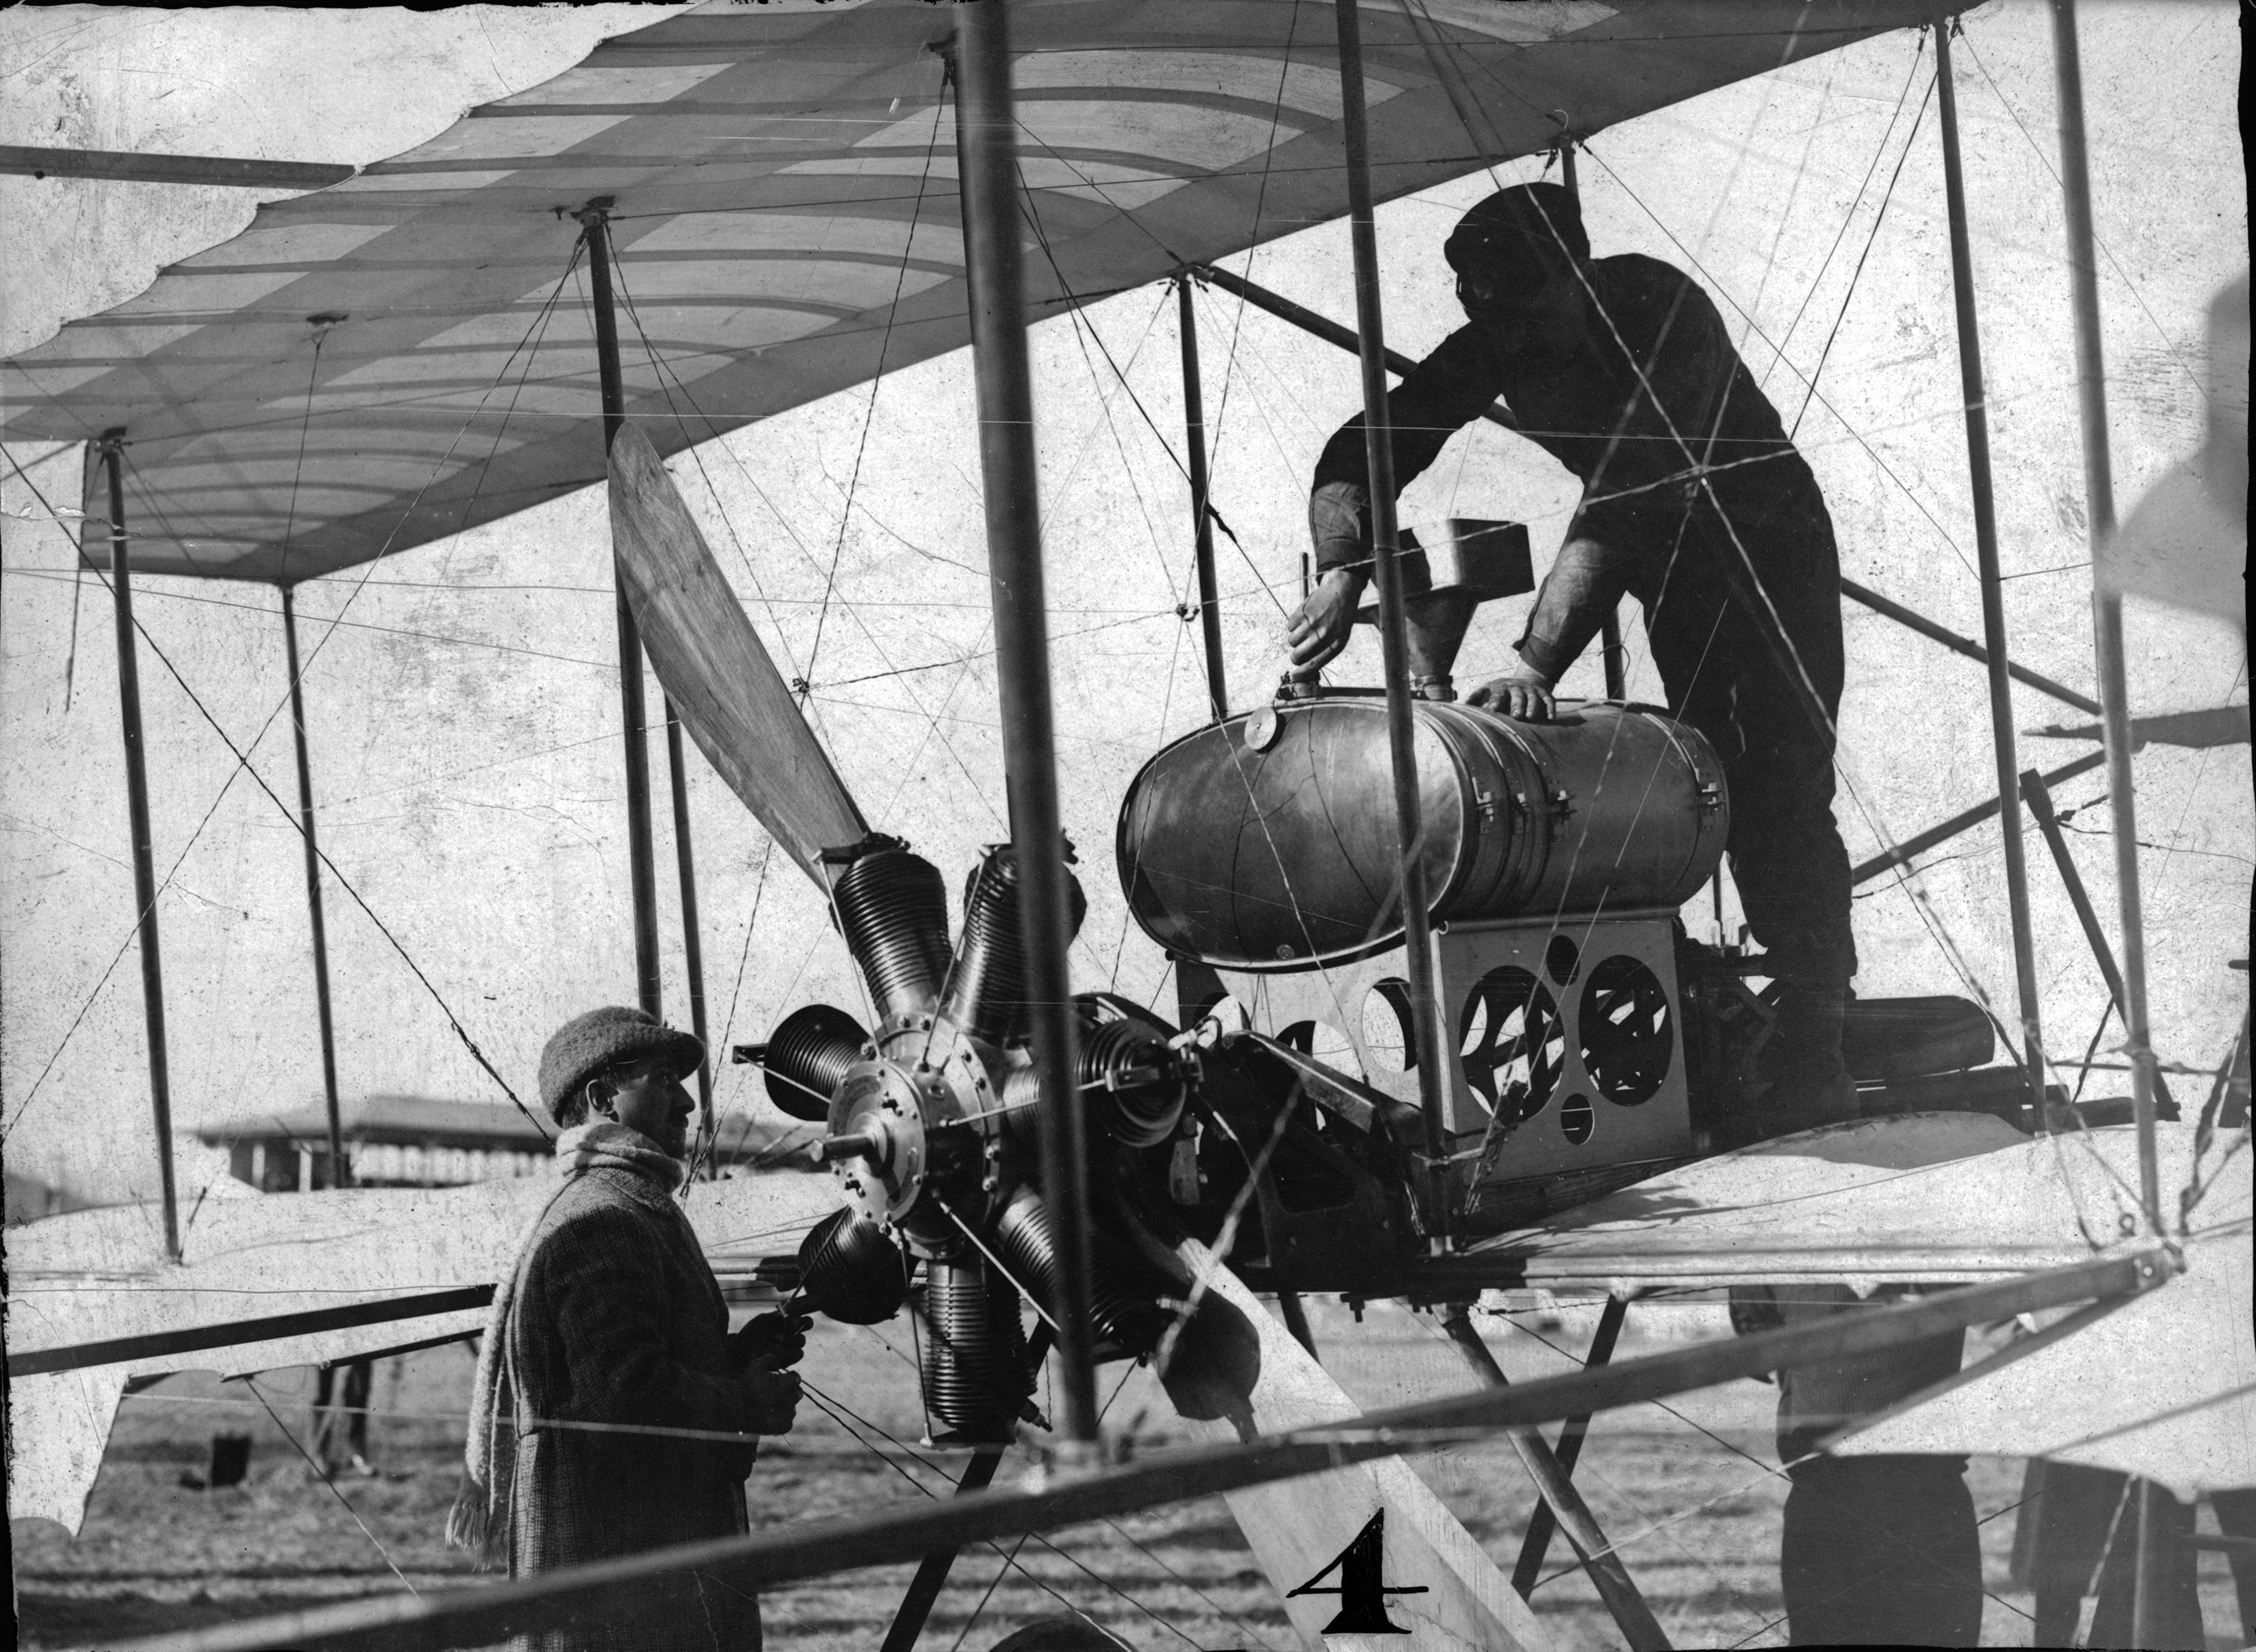 Louis Paulhan and his airplane in 1910